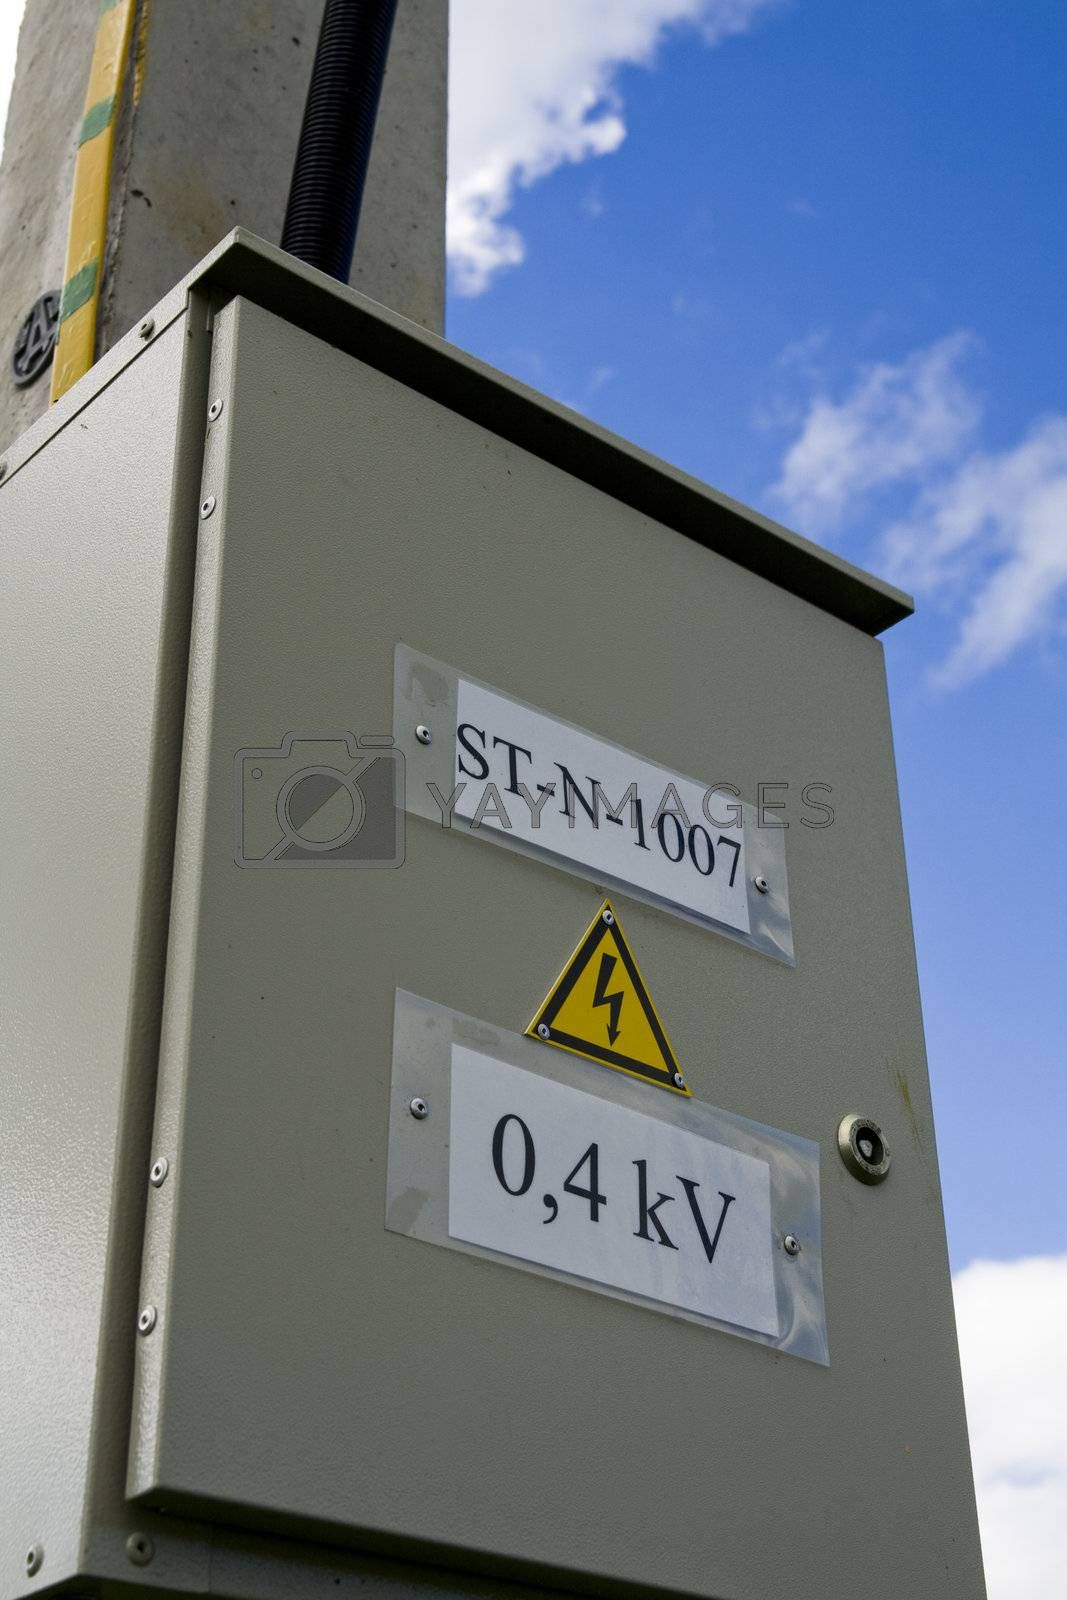 Fuse box with black/yellow sign warning for risk of electrocution